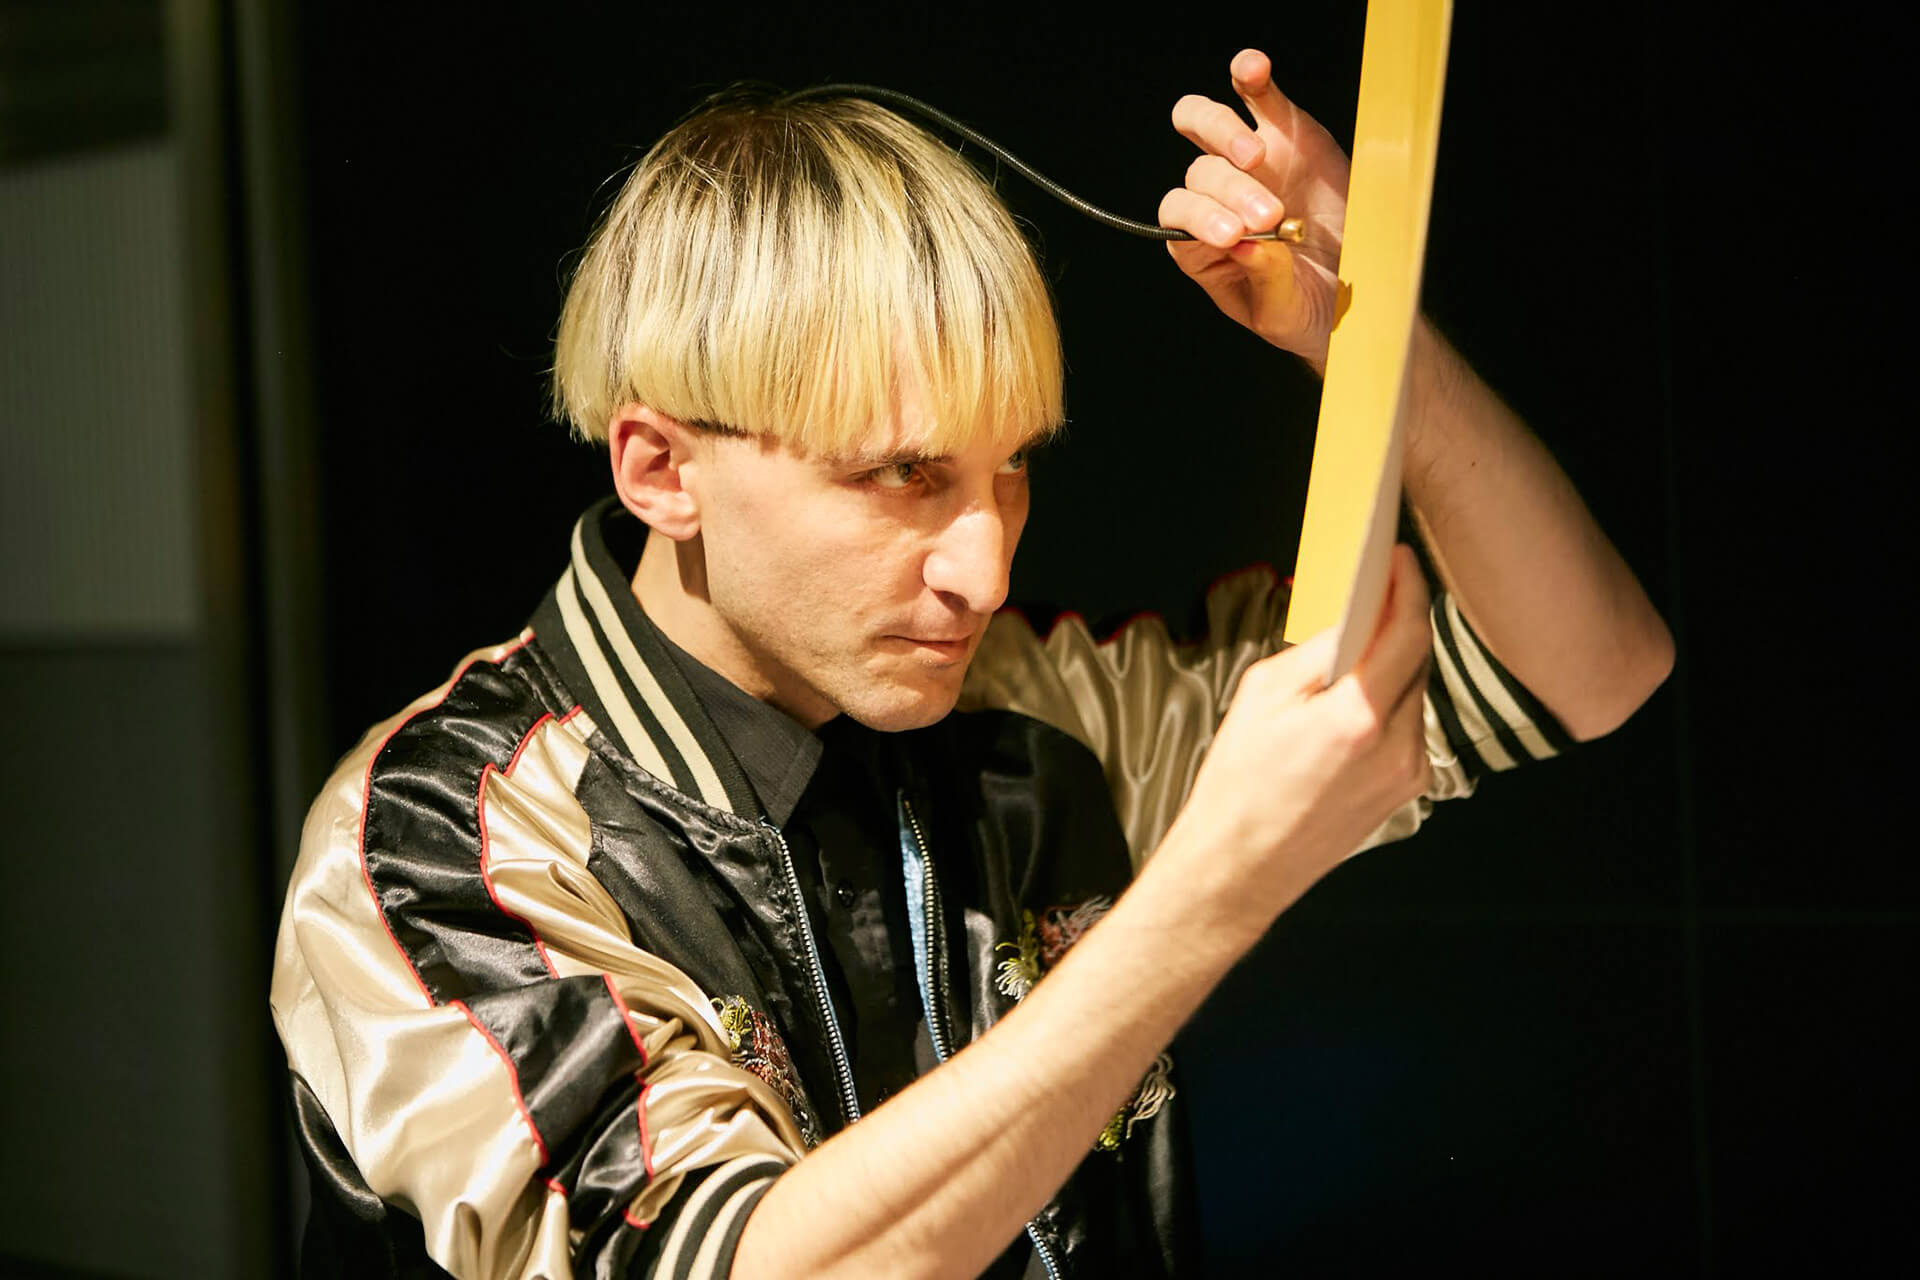 World's first human cyborg, Neil Harbisson has an antenna implanted in his skull that allows him to hear colours | Cross Border Conversations | Morag Myerscough X Neil Harbisson | STIR X LOCO Design